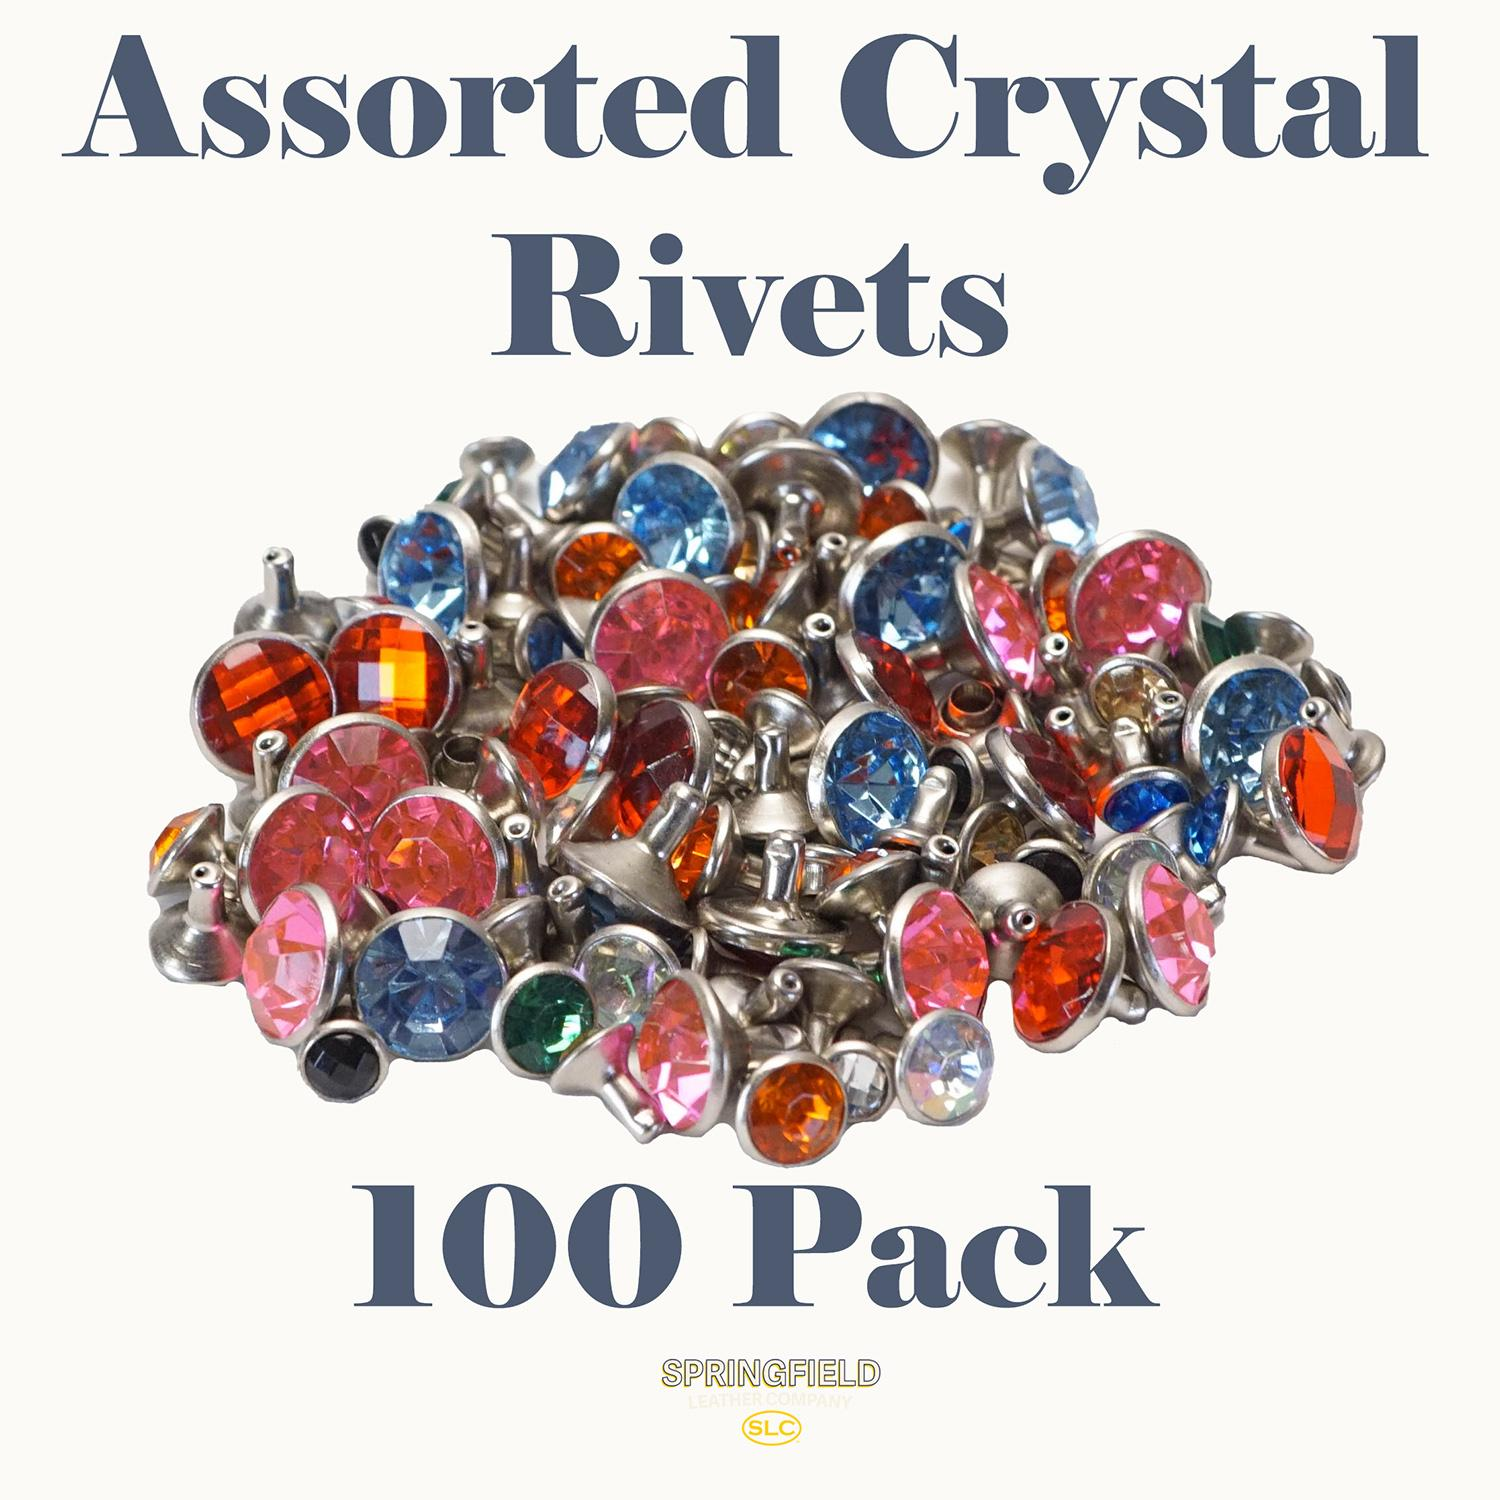 Assorted Crystal Rivets - 100 Pack